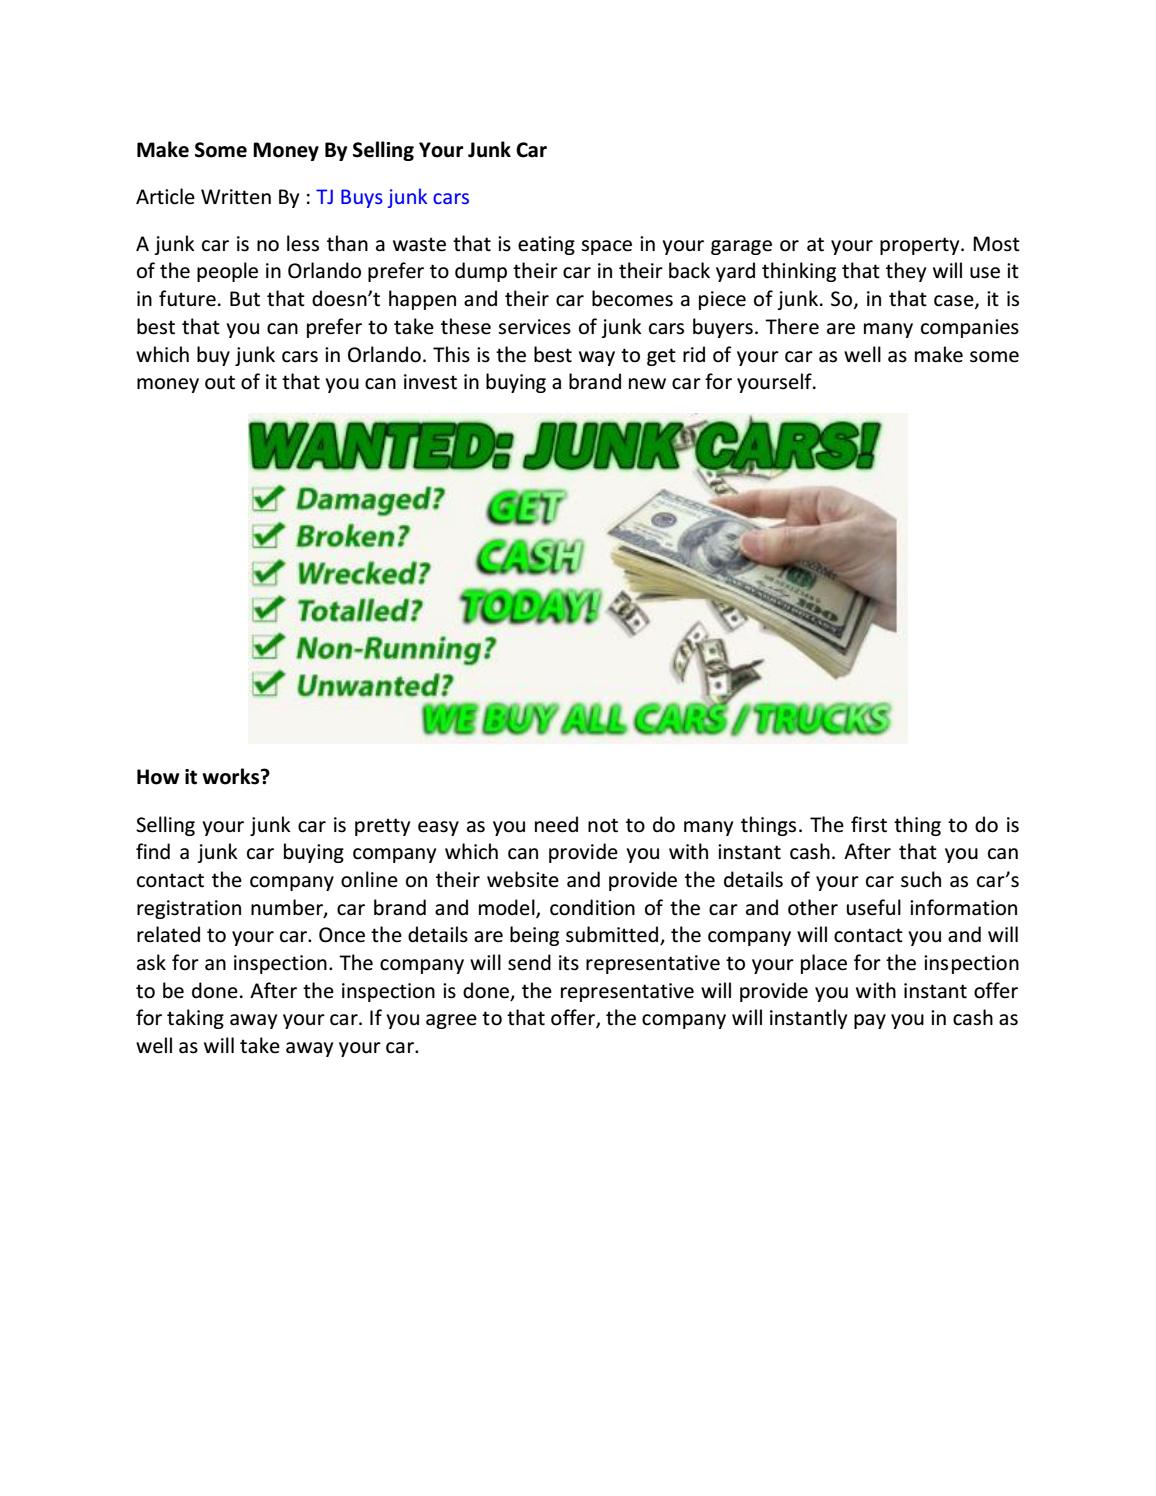 Make some money by selling your junk car by Rajes muduli - issuu